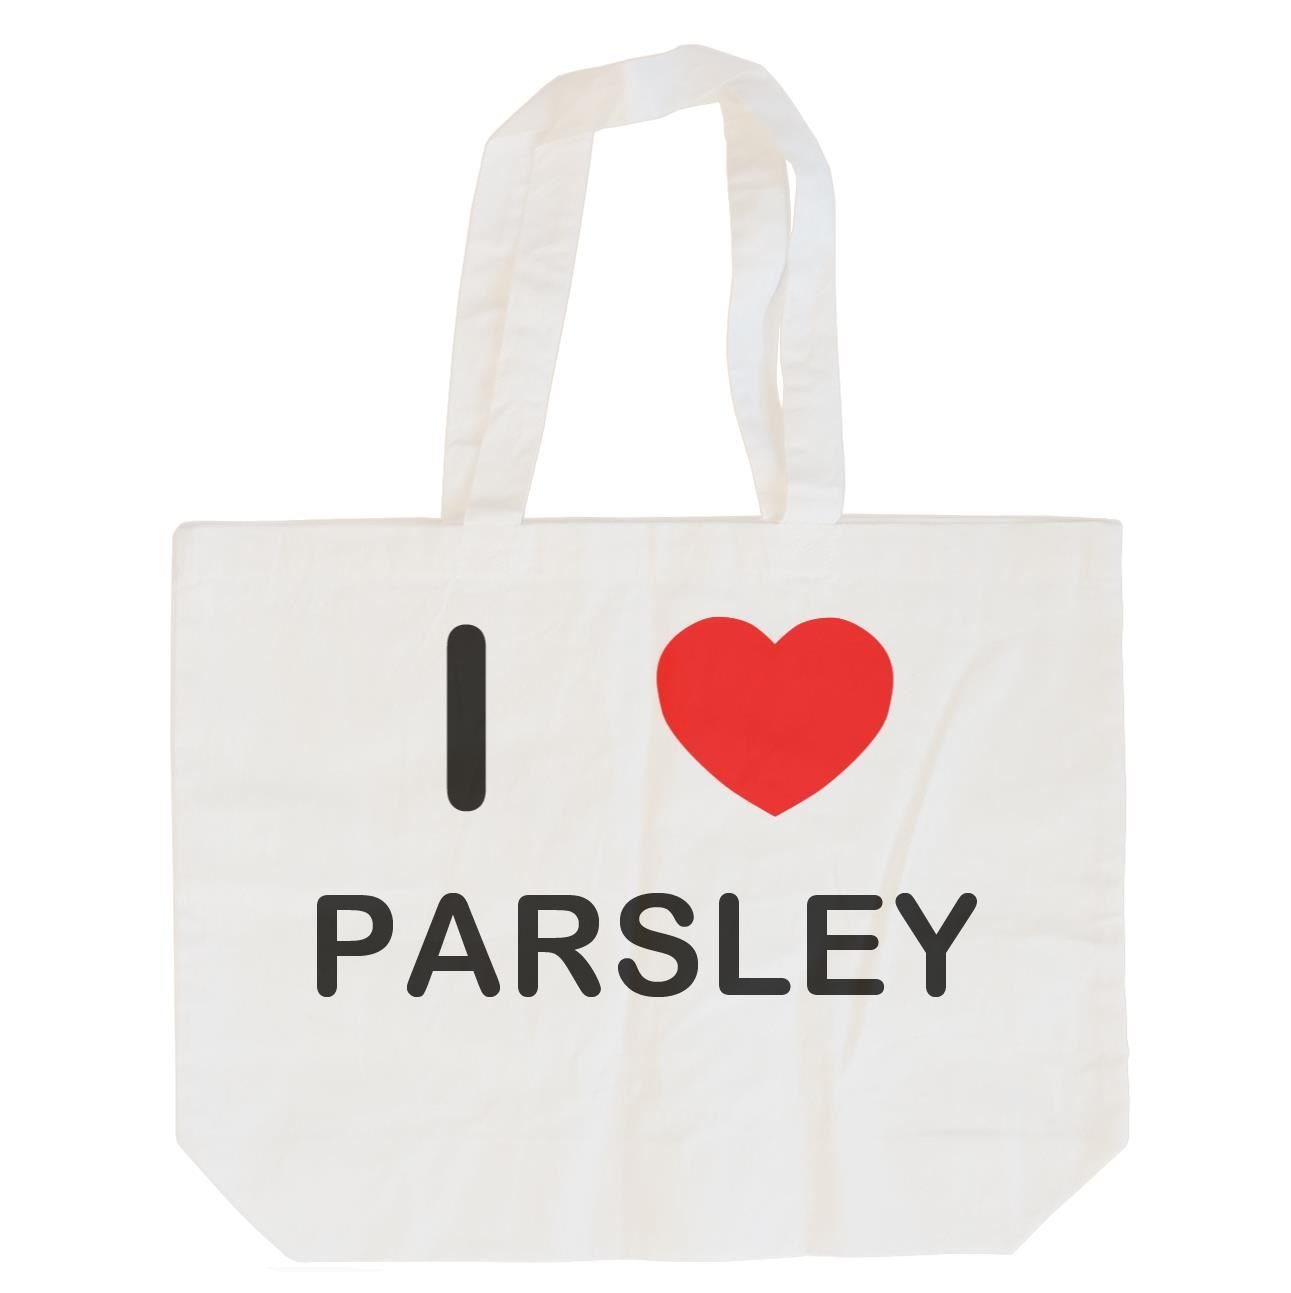 I Love Parsley - Cotton Bag | Size choice Tote, Shopper or Sling